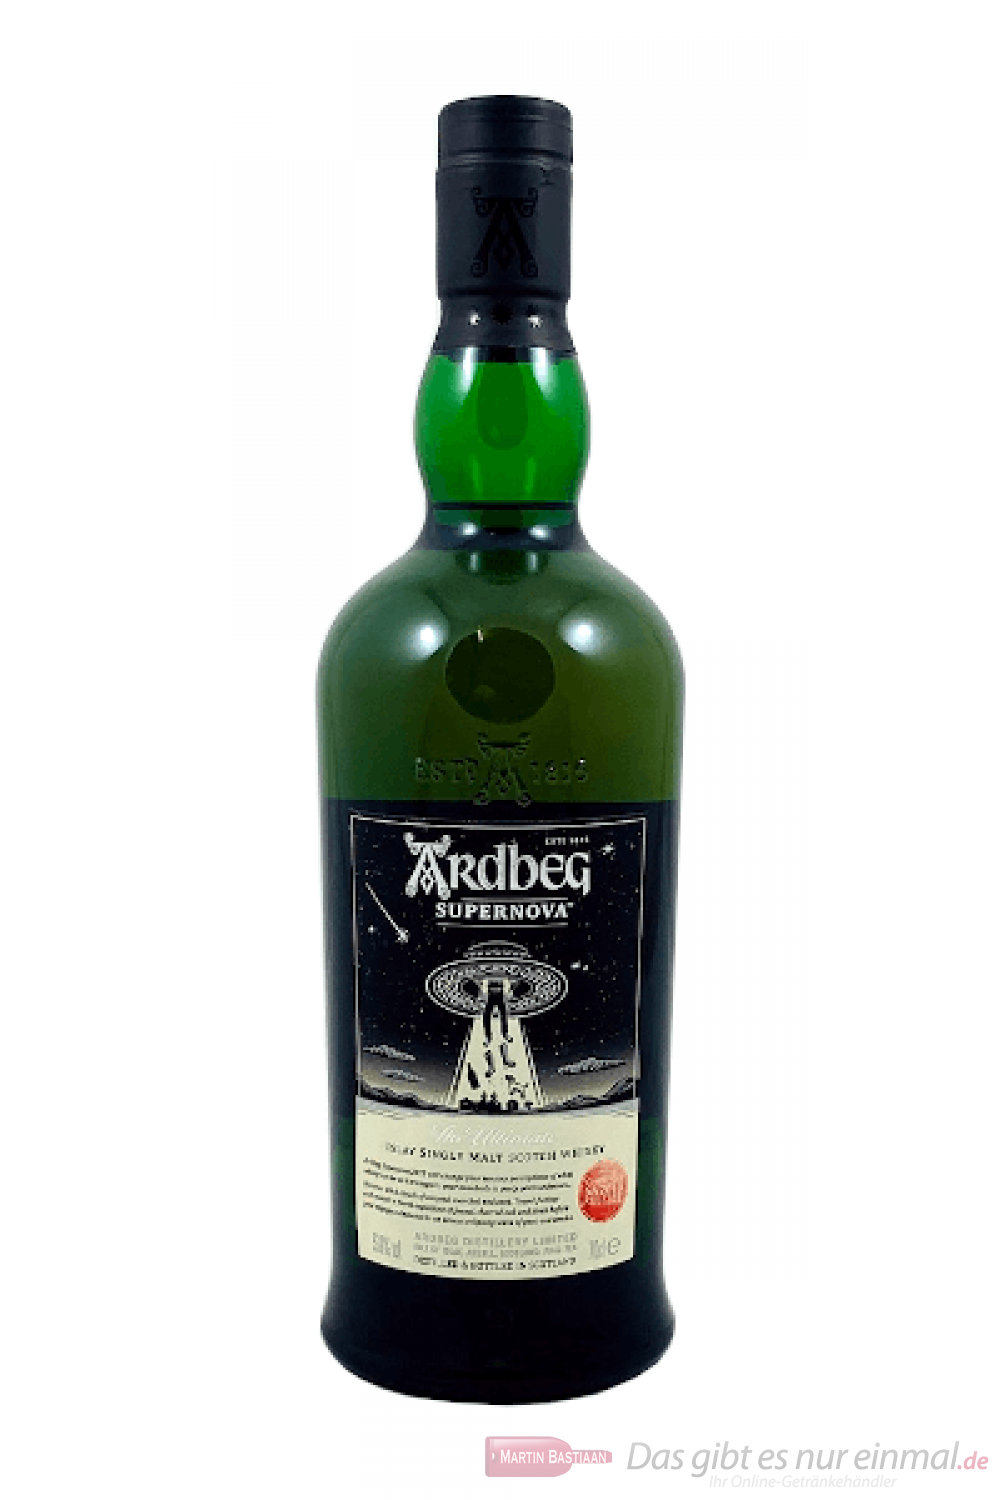 Ardbeg Supernova 2019 Single Malt Scotch Whisky 0,7l